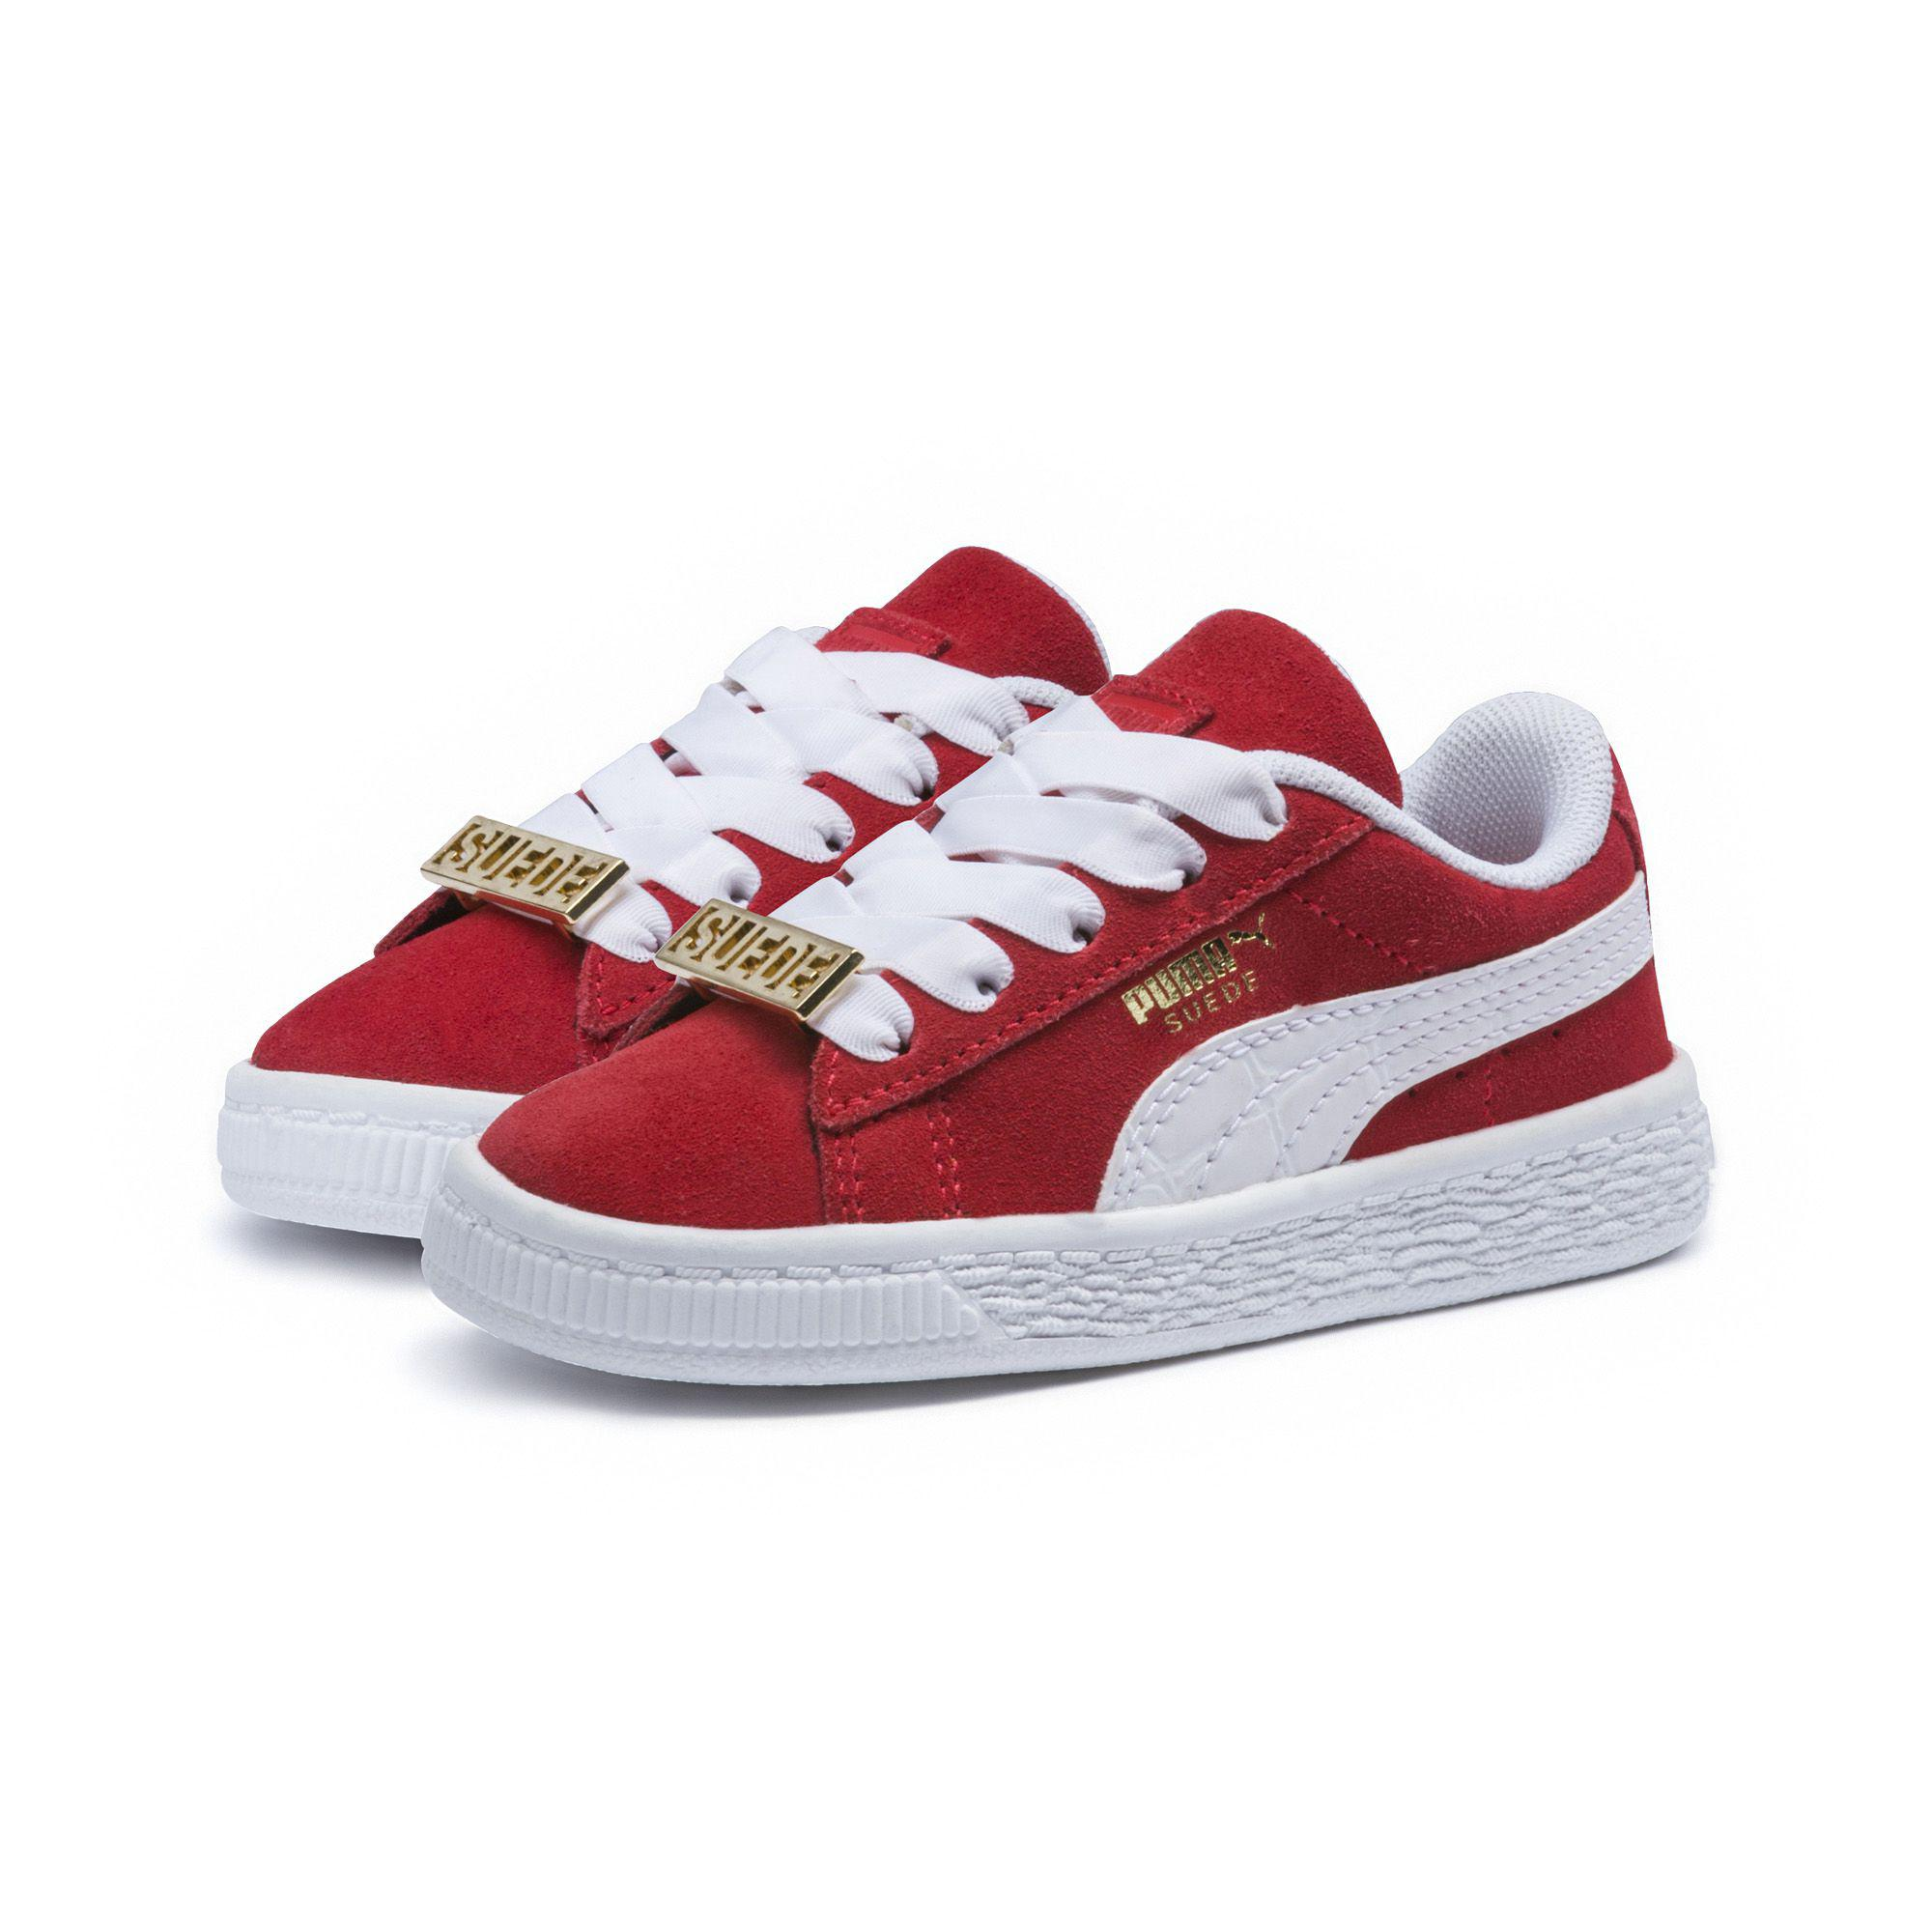 c59dfed7e88207 Lyst - PUMA Suede Classic B-boy Fabulous Baby Sneakers in Red for Men